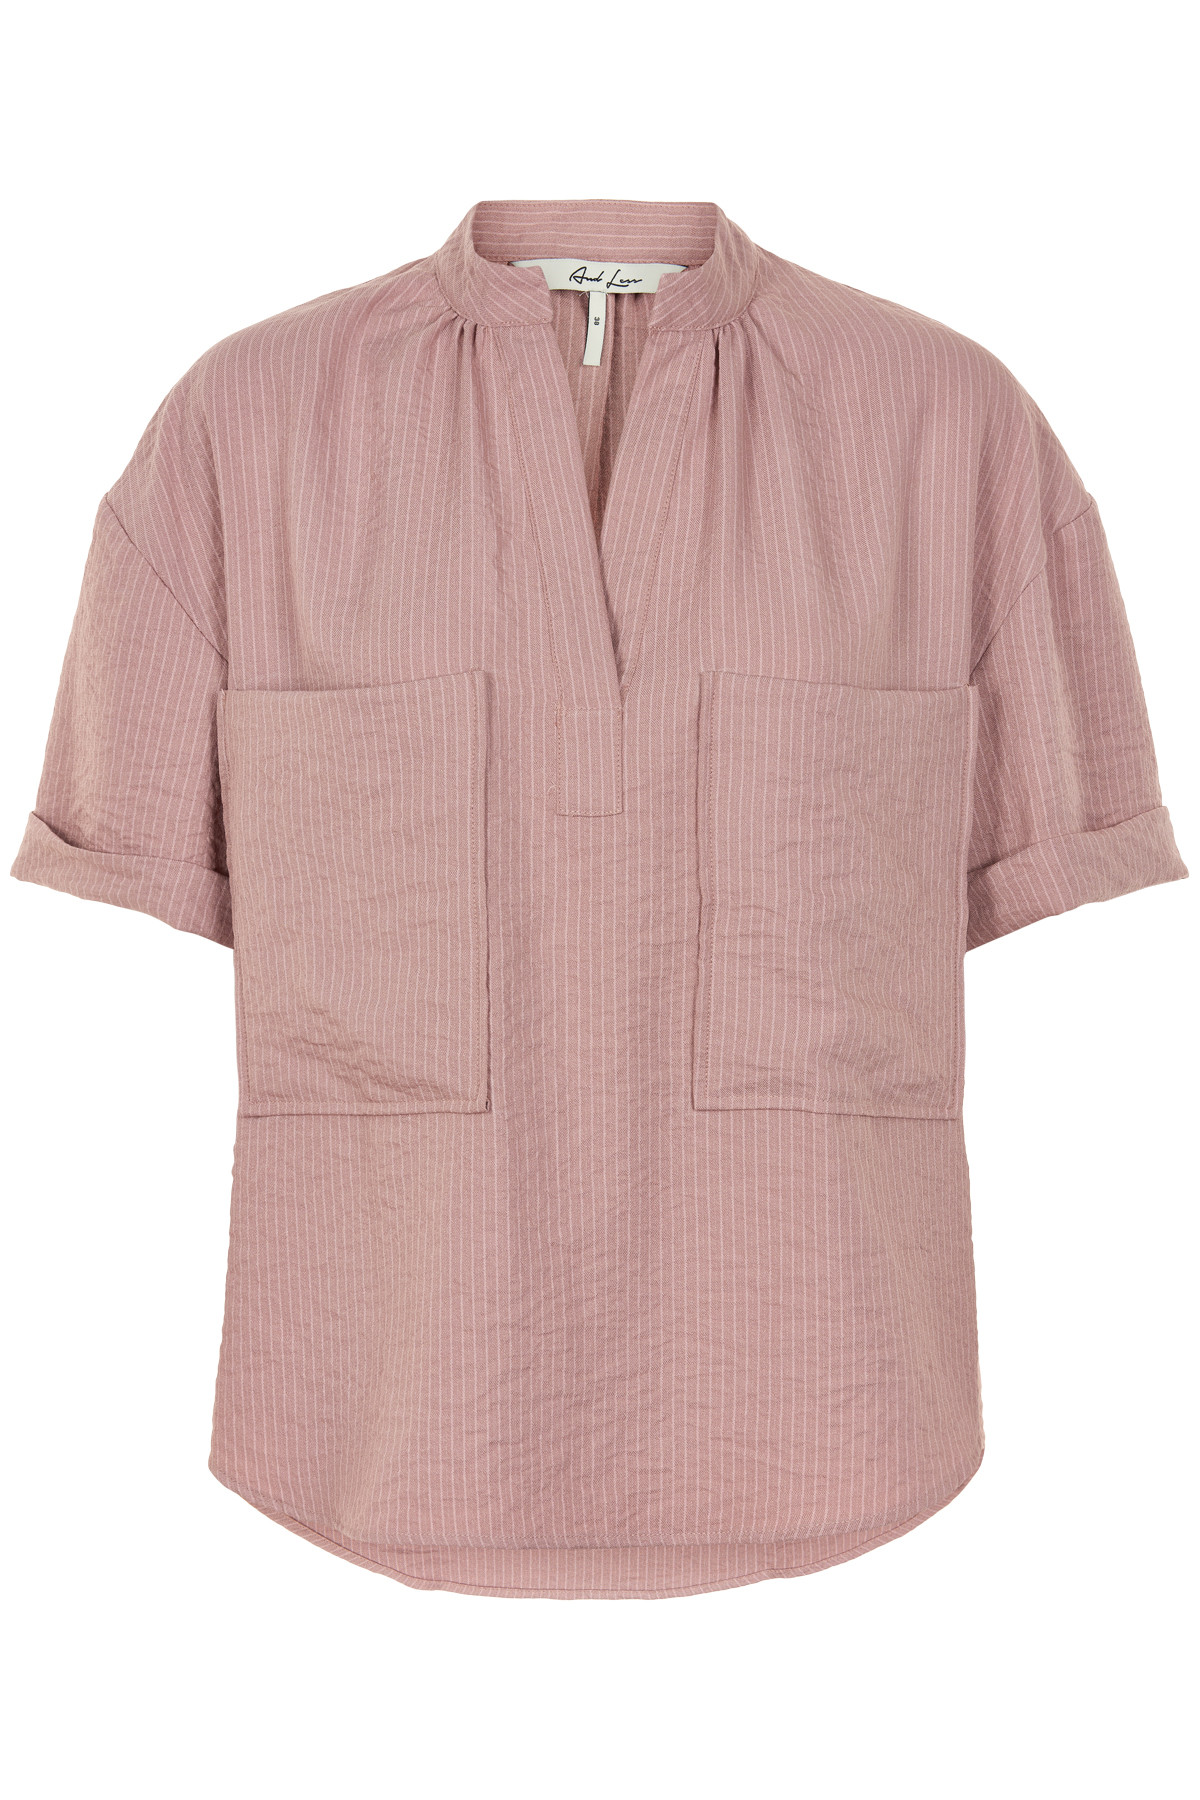 Image of   AND LESS ORIBELLA BLUSE 5219017 A (Ash Rose, 40)